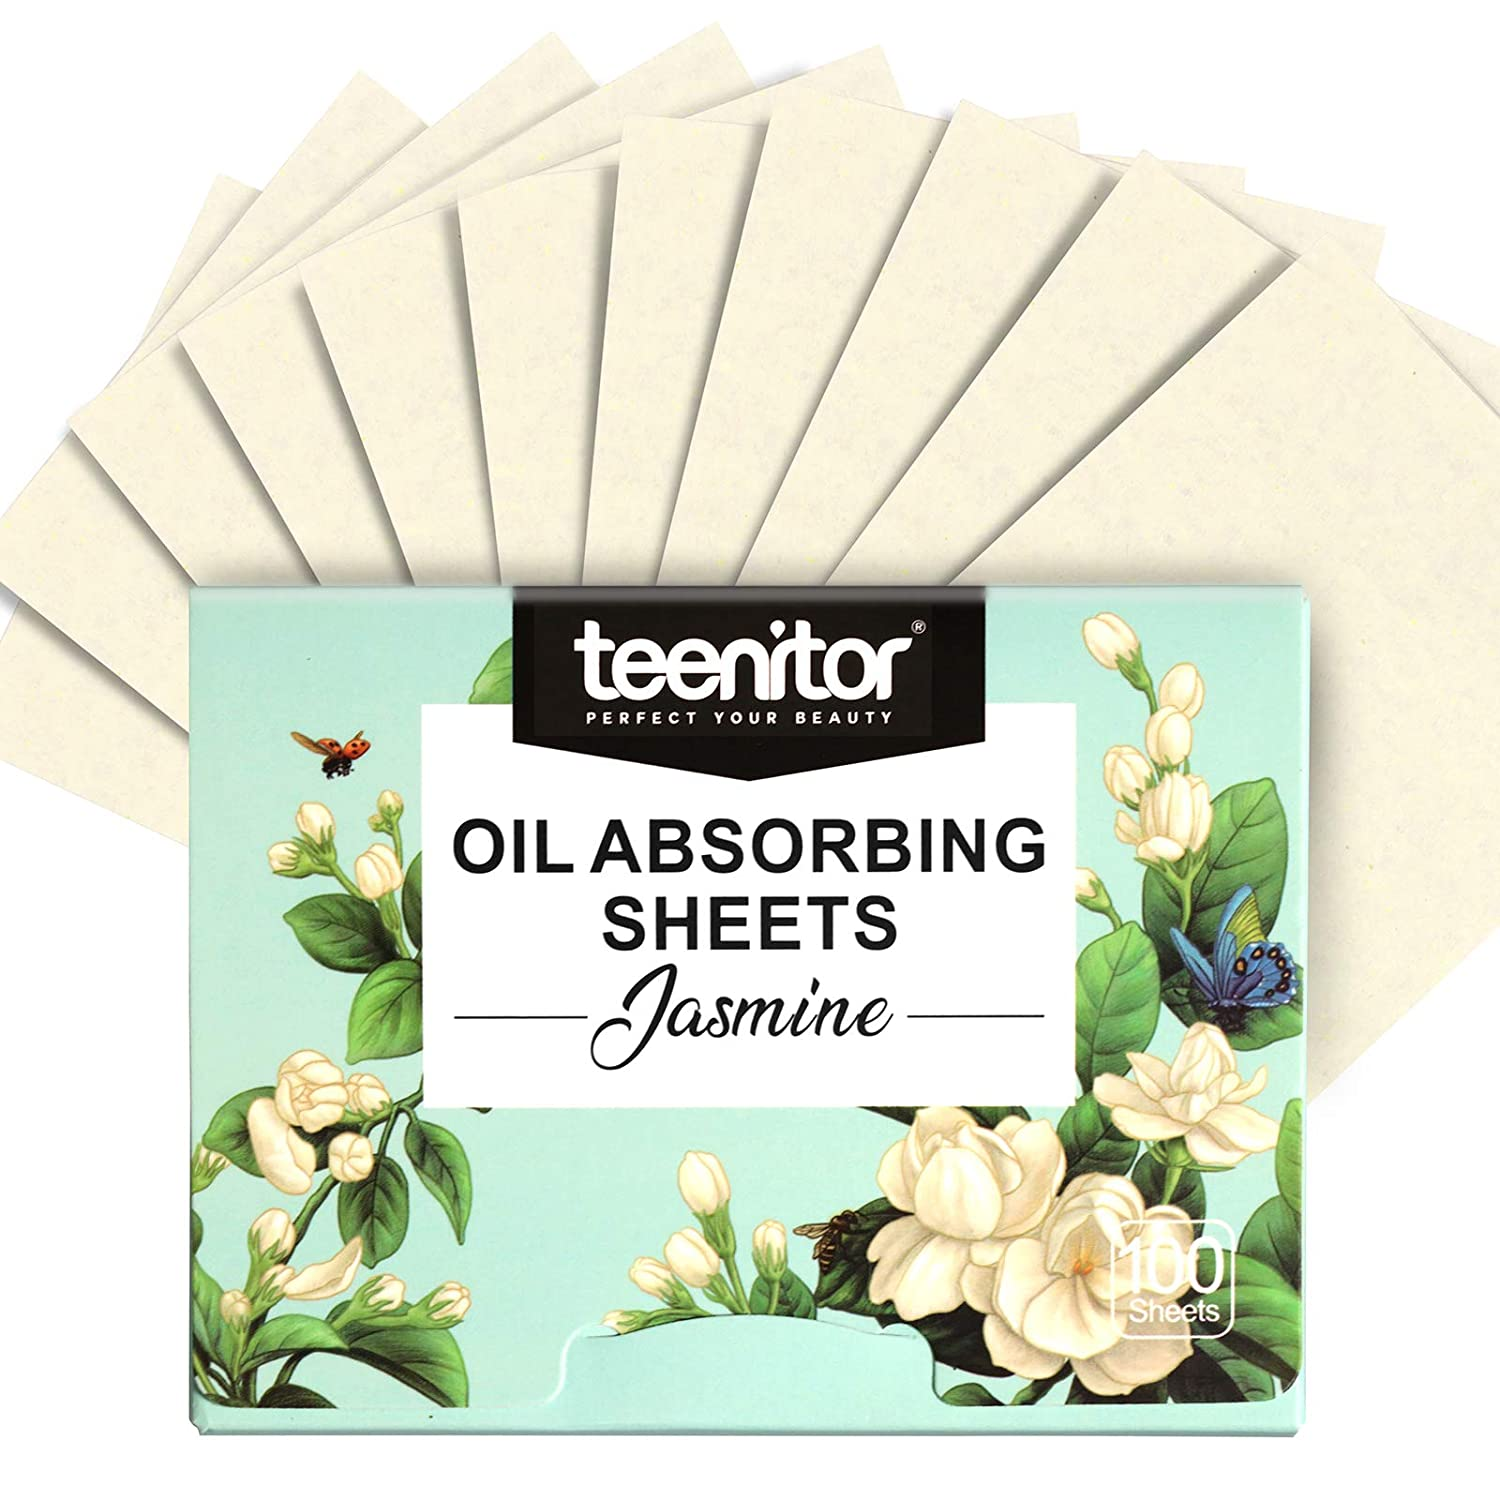 Teenitor 1000 Counts Oil Absorbing Sheets, Oil Blotting Paper, Oil Absorbing Tissues, Face Facial Natural Oil Control Film Blotting for Oily Skin Care Men Women-Jasmine : Beauty & Personal Care